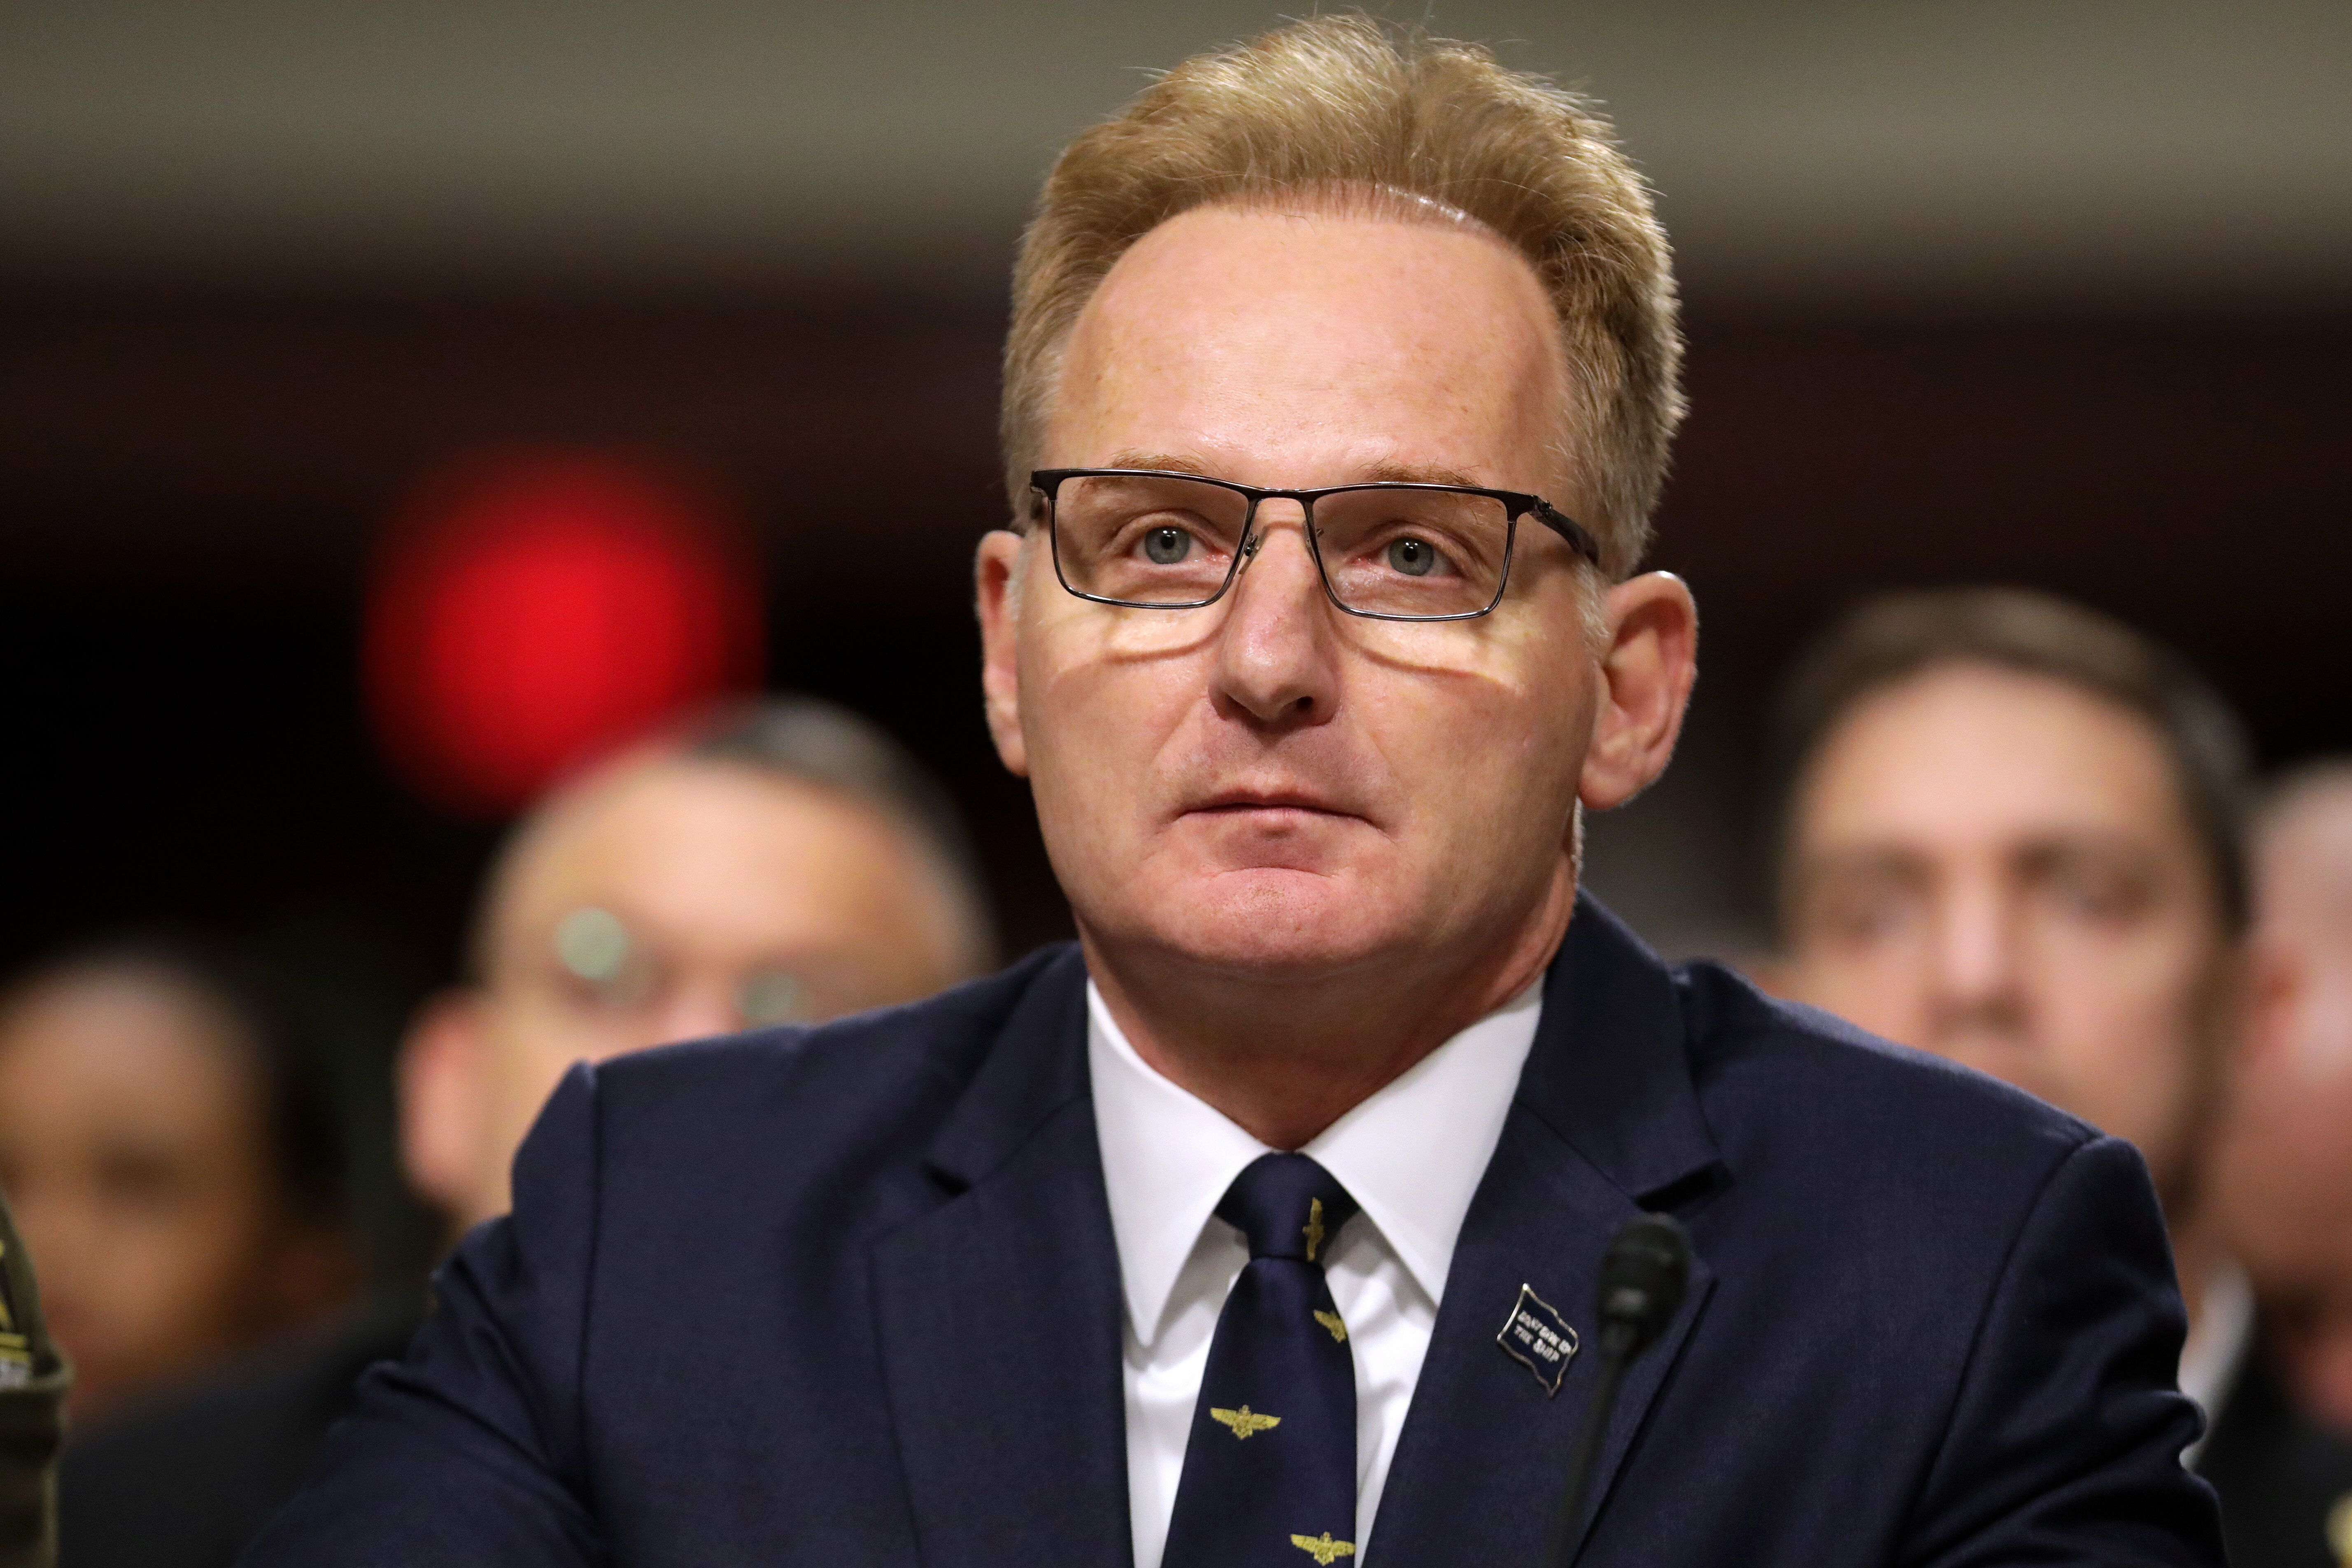 Acting Navy Secretary Thomas Modly (above) suggested that Capt. Brett Crozier leaked his own letter about the coronavirus out